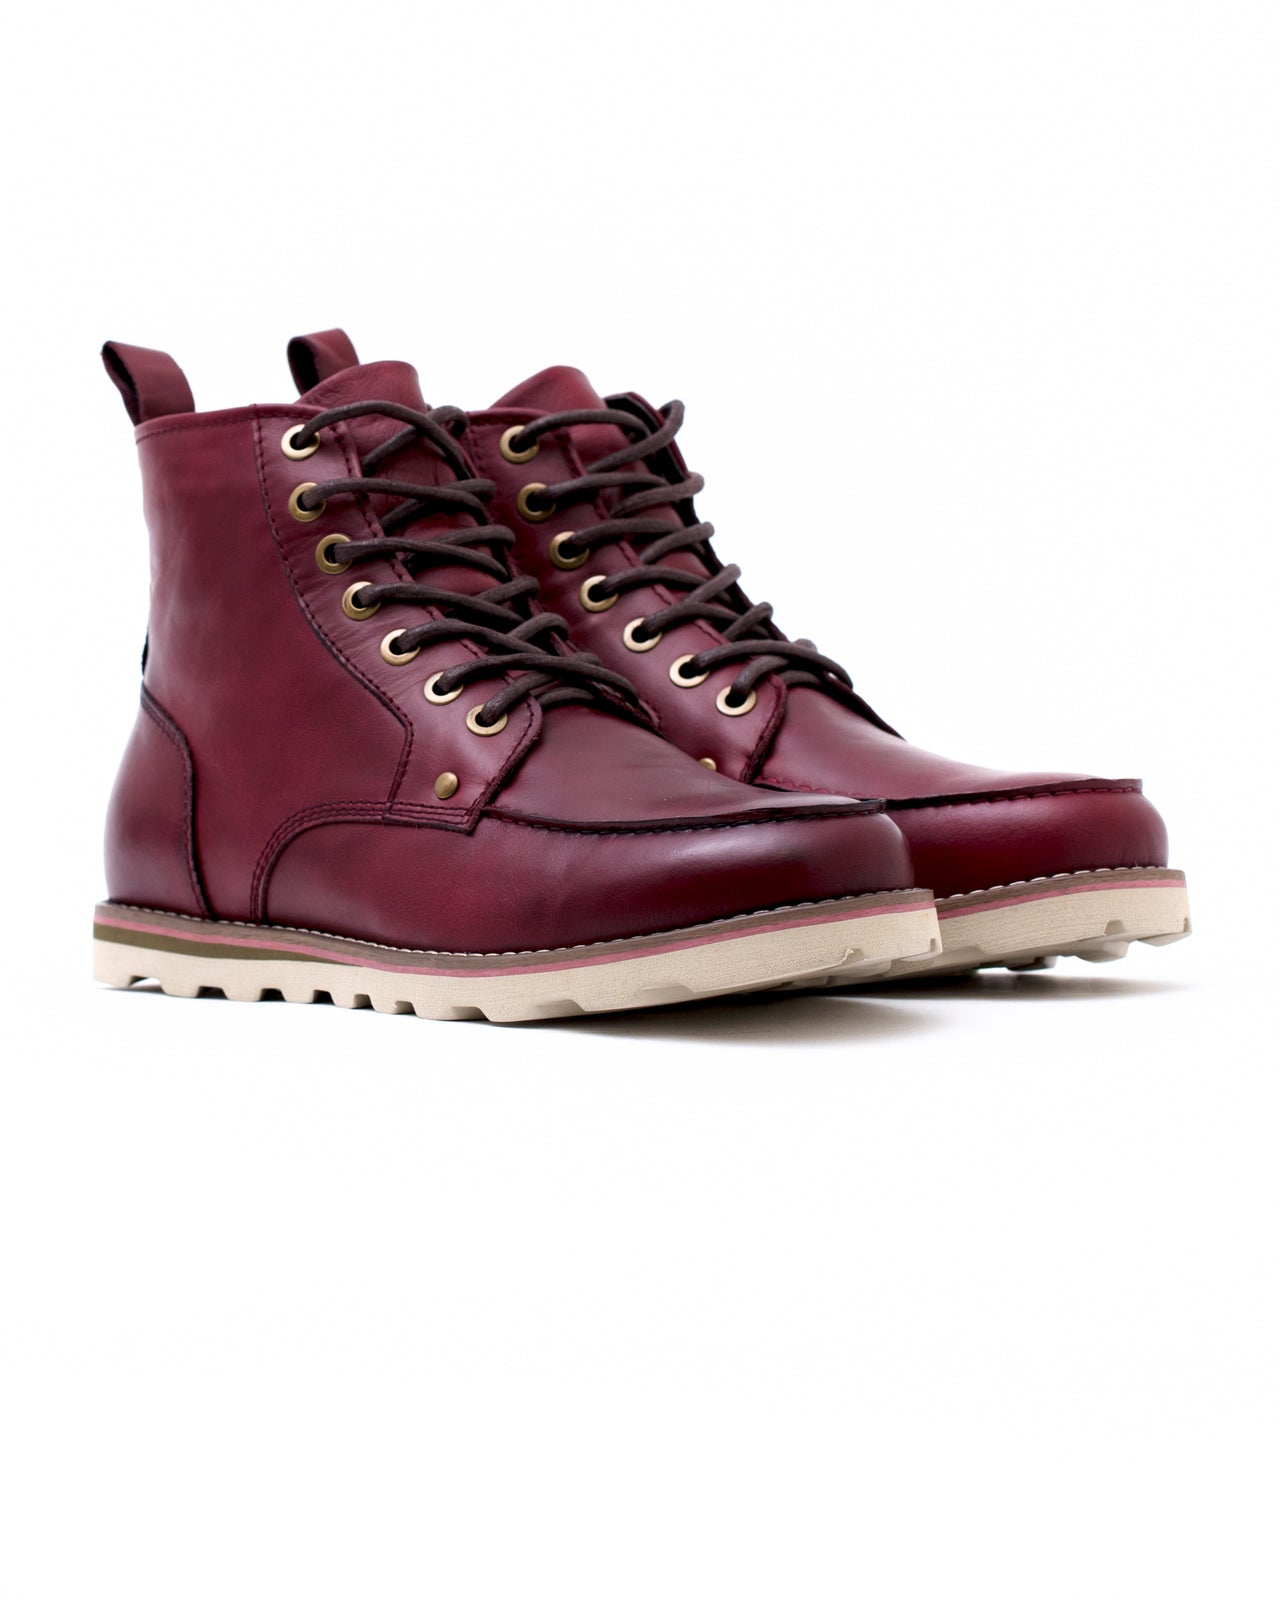 Moc Toe Boot - Color: Wine Waxed Leather | Red